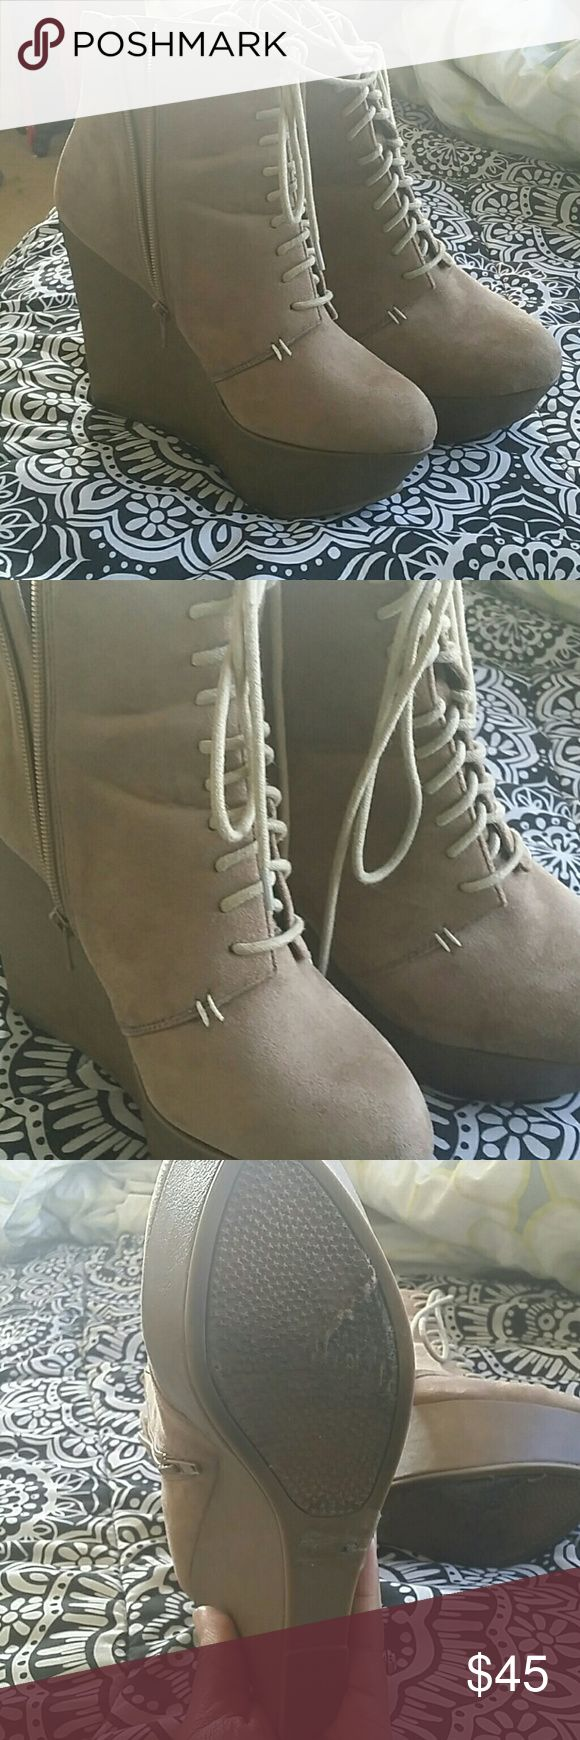 Brown suede booties Brown suede booties for any on the go outfit, really comfortable and stylish Shoes Platforms